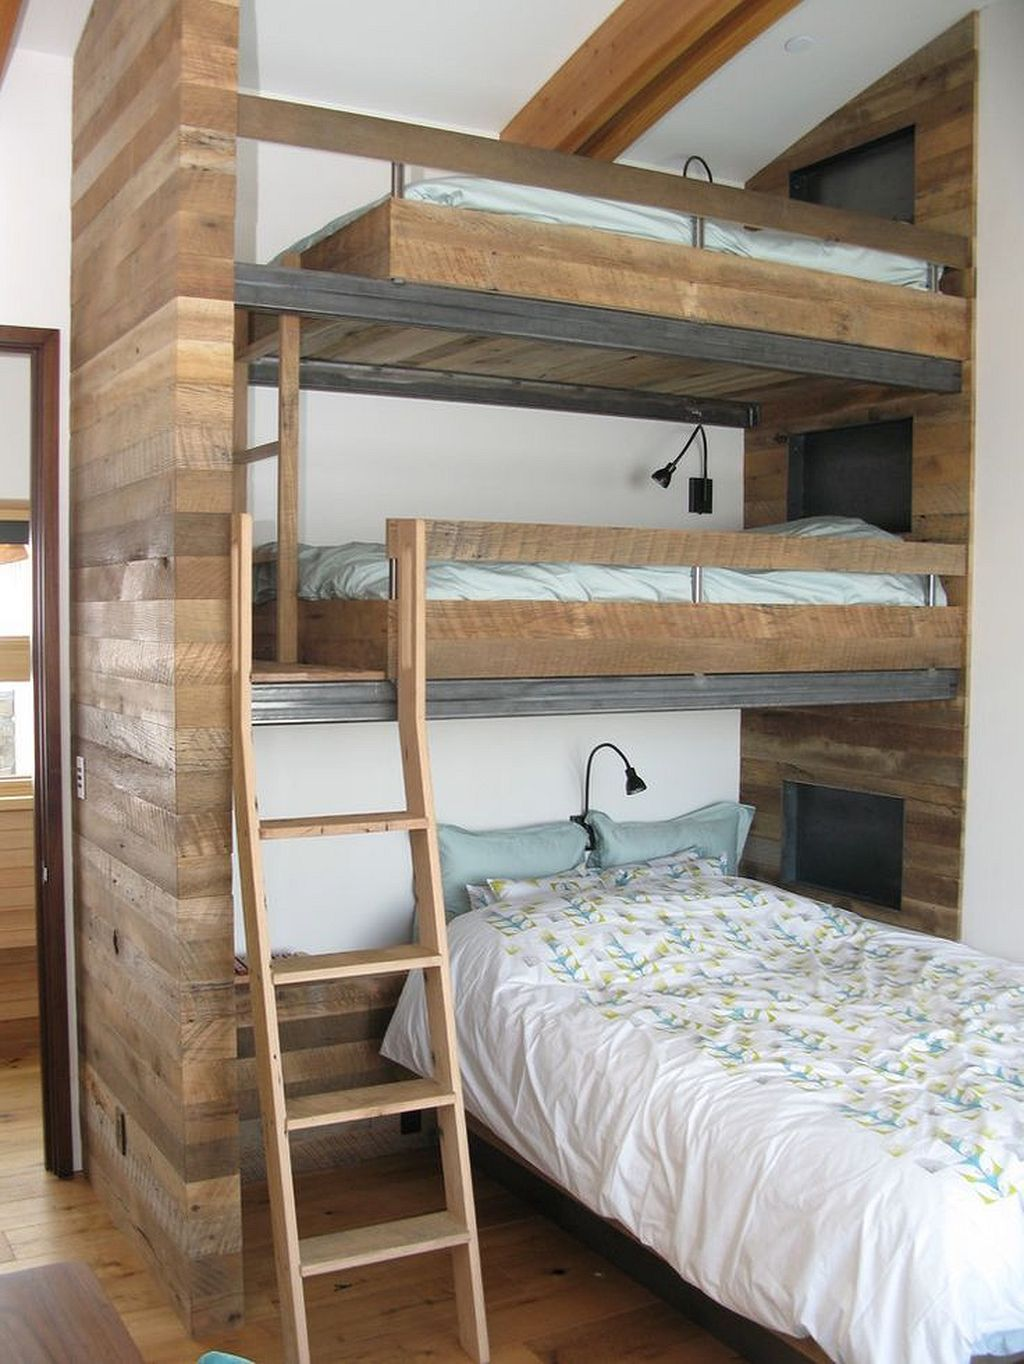 Loft bed design ideas  Nice  Bunk Bed For Boys Room Ideas pinarchitecture